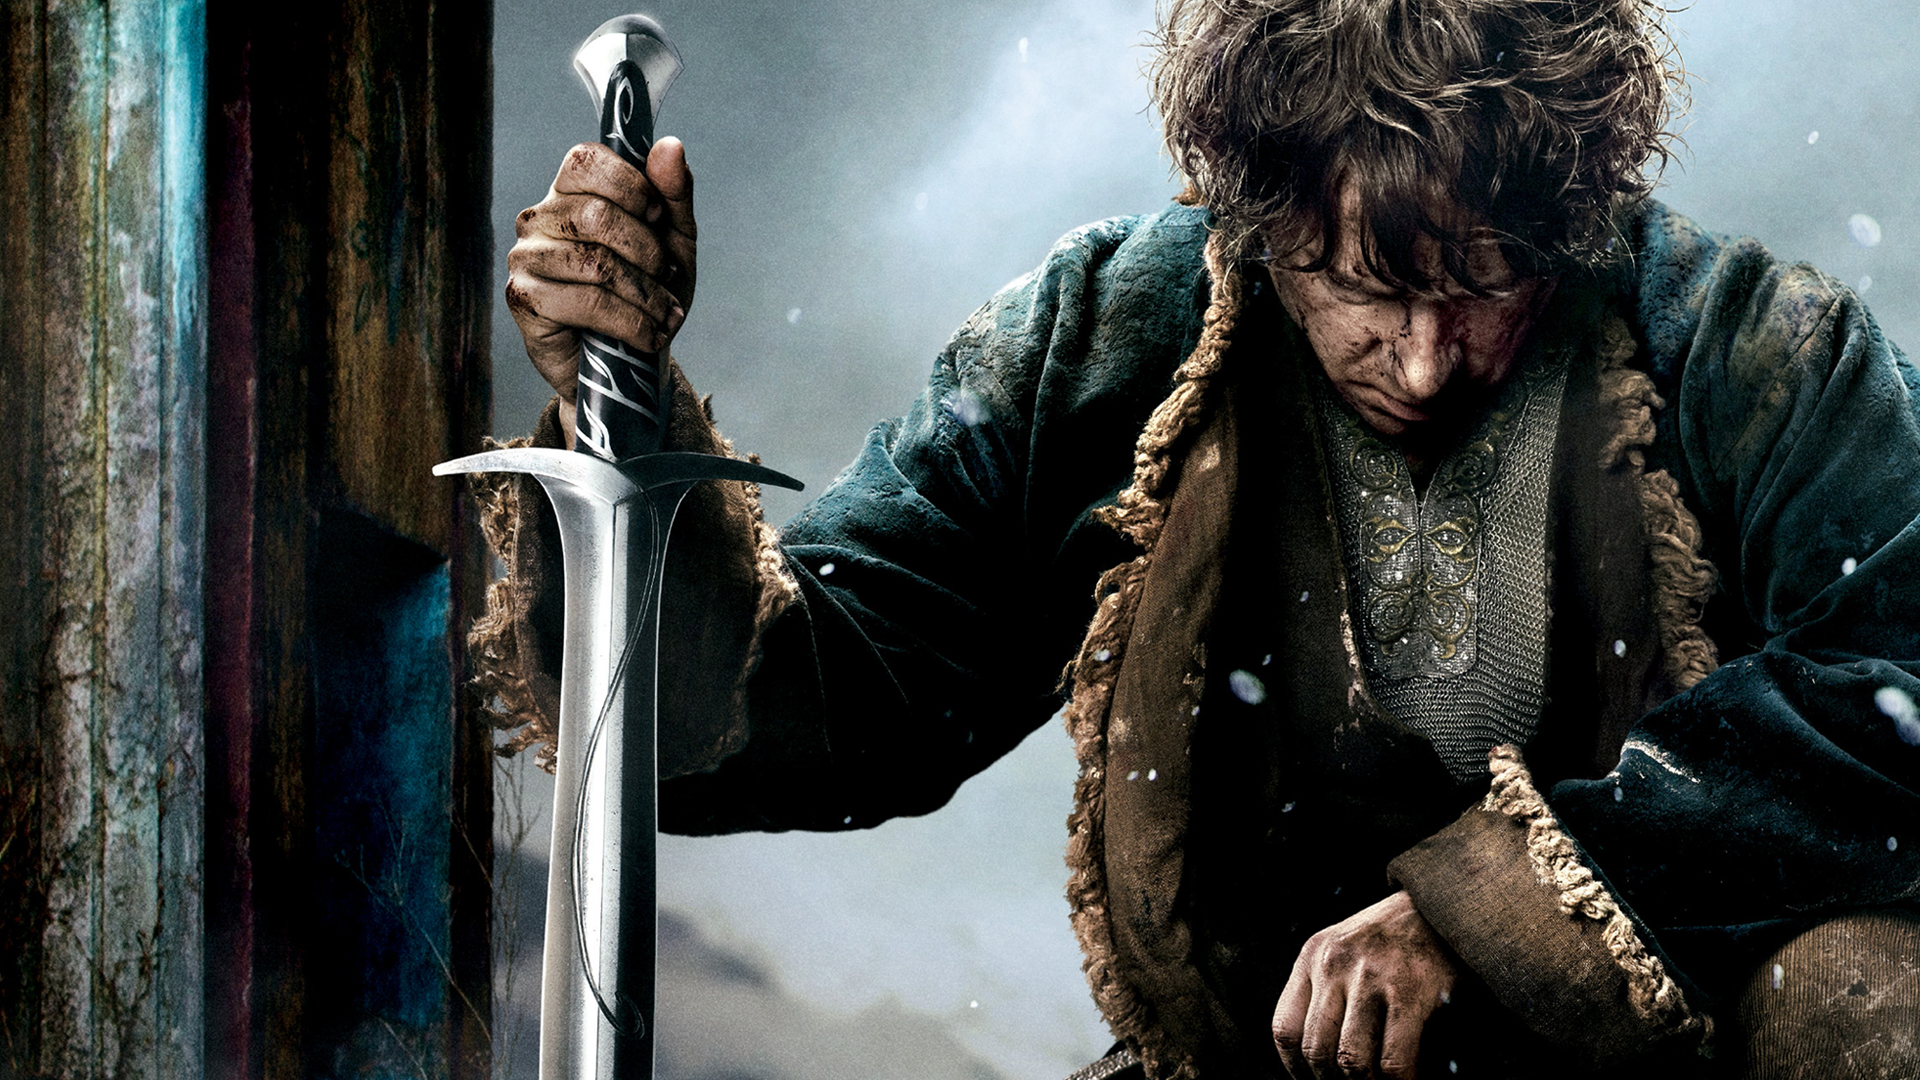 The Hobbit: The Battle of the Five Armies - Spoiler Review Orlando Bloom Movies